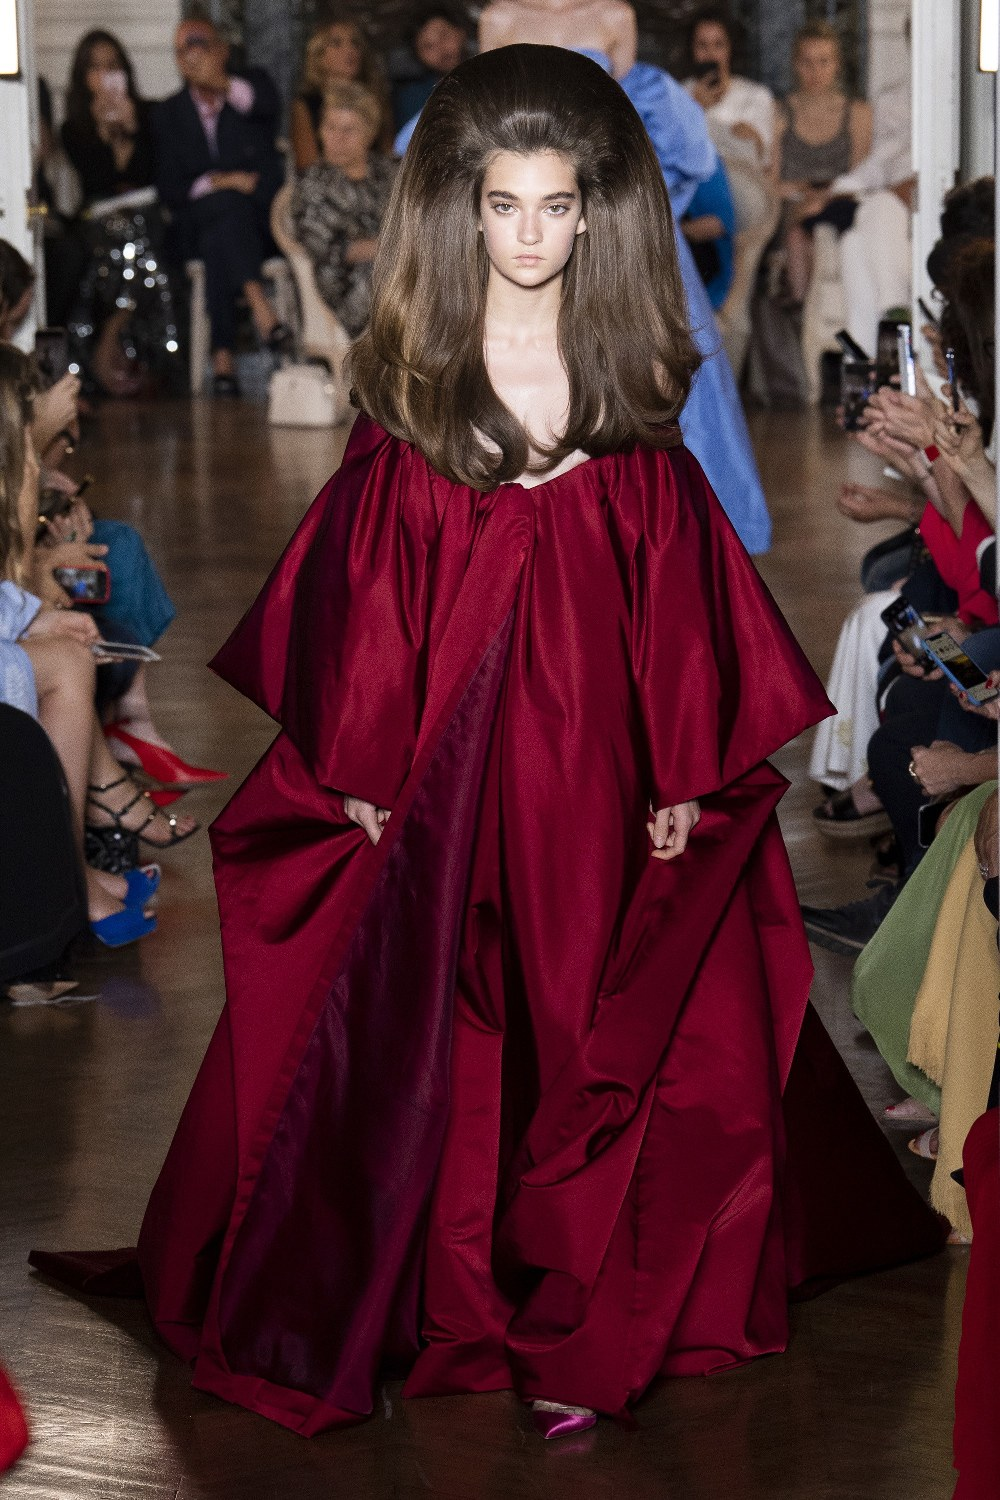 The Valentino Runway Fall Winter 2018 line during the Haute Couture Fashion Week in Paris, France.  Model Kaia Gerber was seen modeling for the runway show.  Pictured: Model on the catwalk Ref: SPL5008221 040718 NON-EXCLUSIVE Picture by: SplashNews.com  Splash News and Pictures Los Angeles: 310-821-2666 New York: 212-619-2666 London: 0207 644 7656 Milan: +39 02 4399 8577 Sydney: +61 02 9240 7700 photodesk@splashnews.com  World Rights, No France Rights